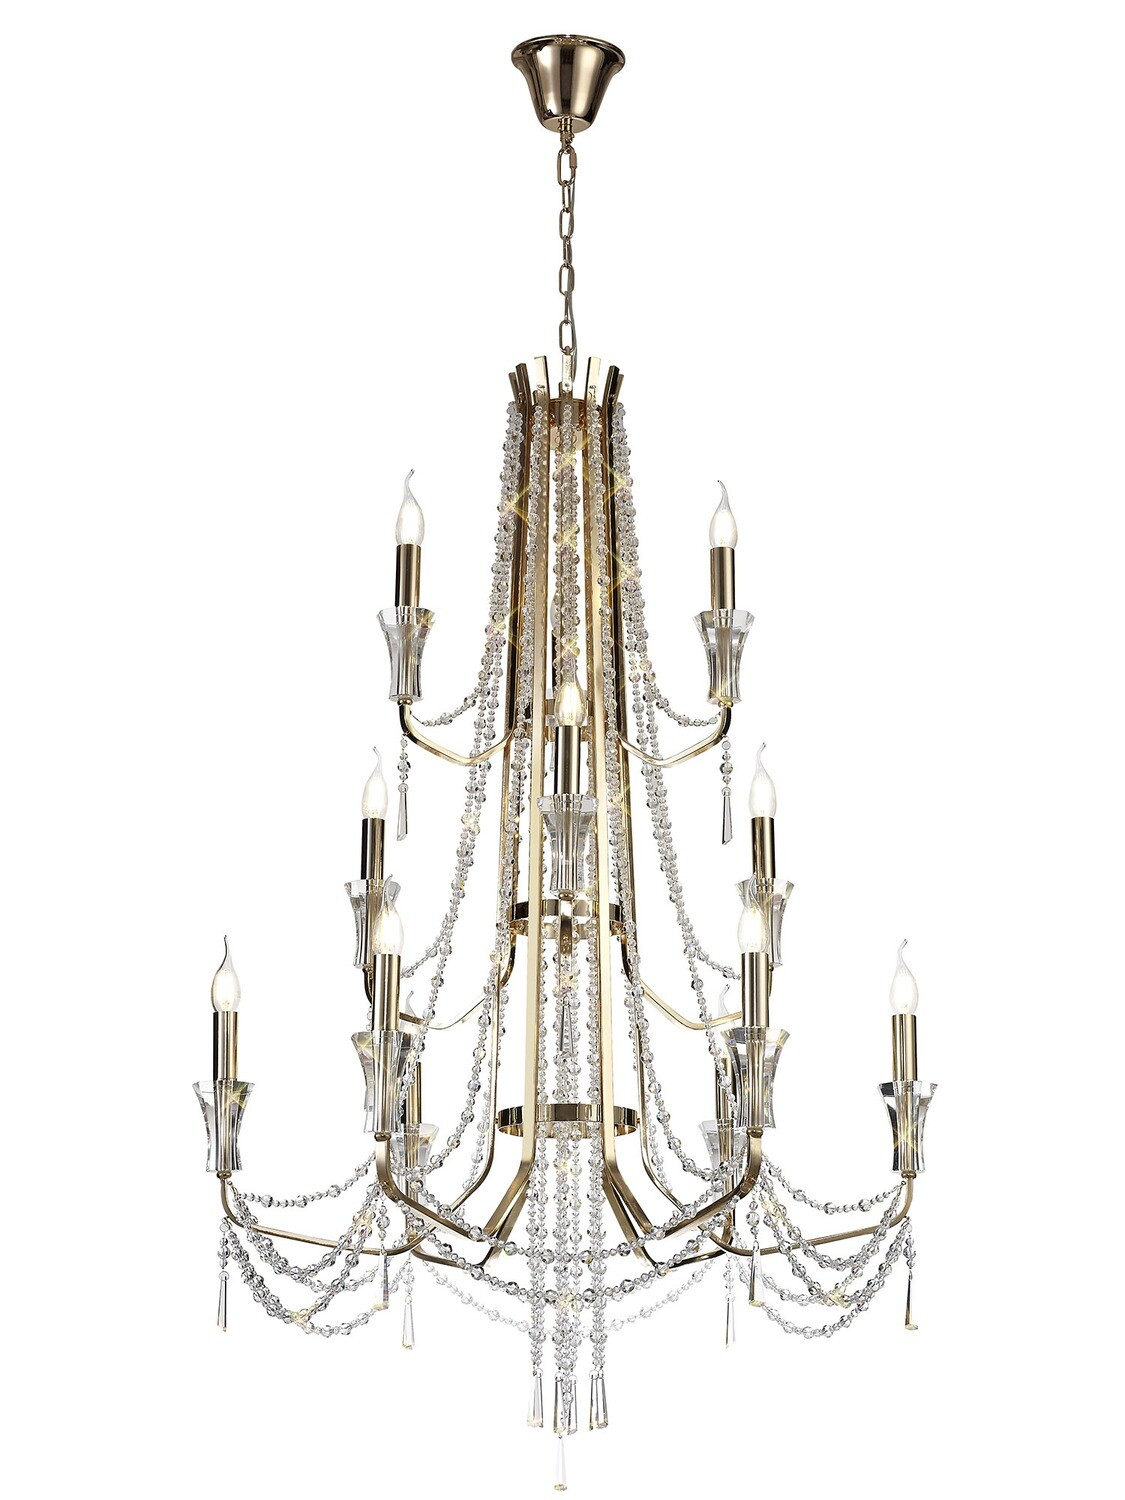 Armand Pendant 6+3+3 Light E14 French Gold/Crystal